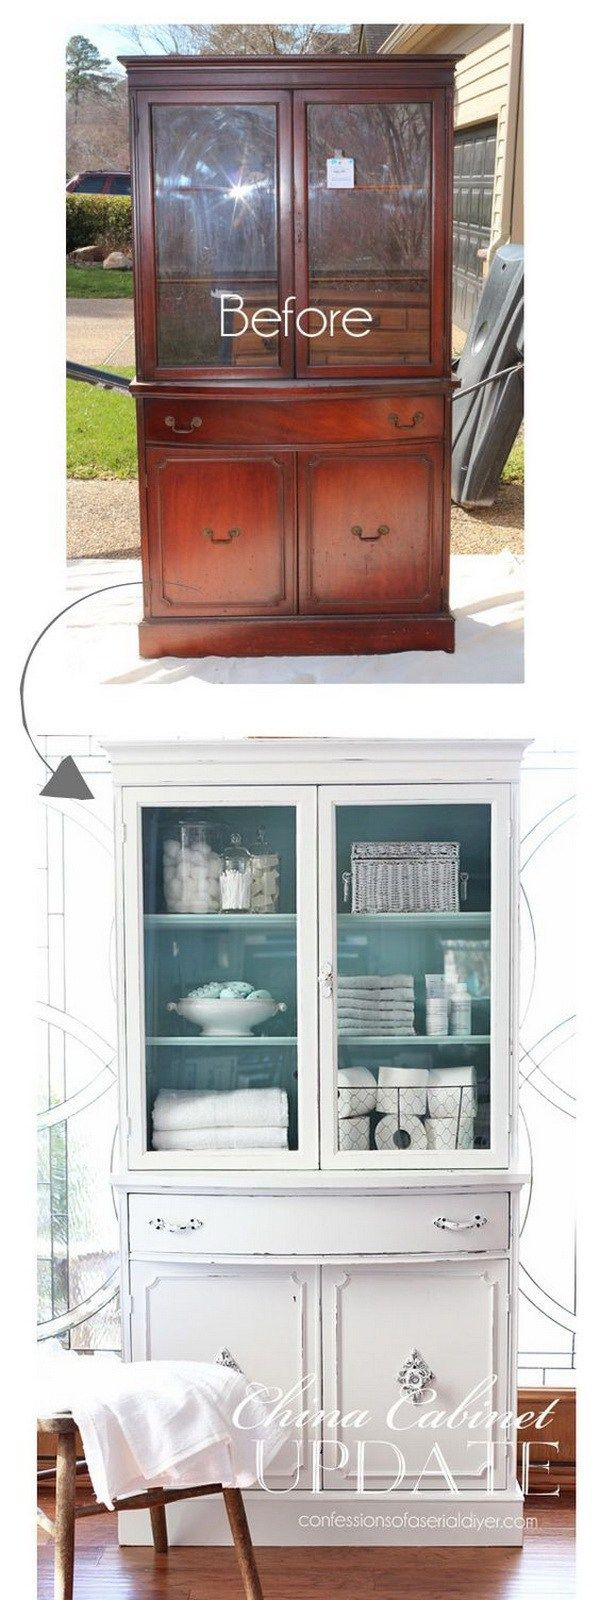 Painting furniture shabby chic - Awesome Diy Furniture Makeover Ideas Genius Ways To Repurpose Old Furniture With Lots Of Tutorials